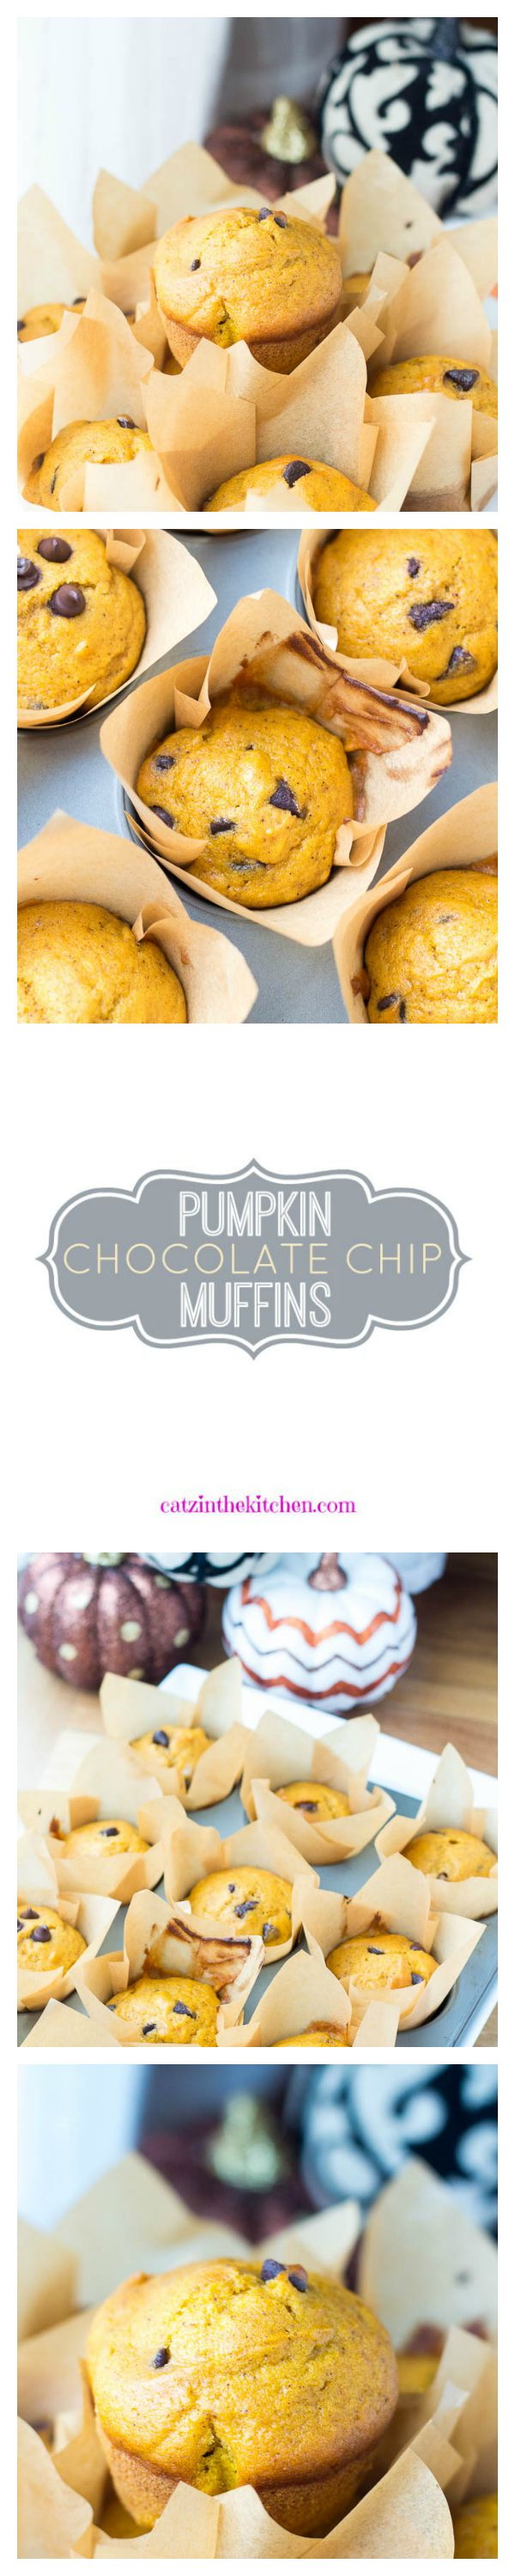 Pumpkin Chocolate Chip Muffins | Catz in the Kitchen | catzinthekitchen.com | #pumpkin